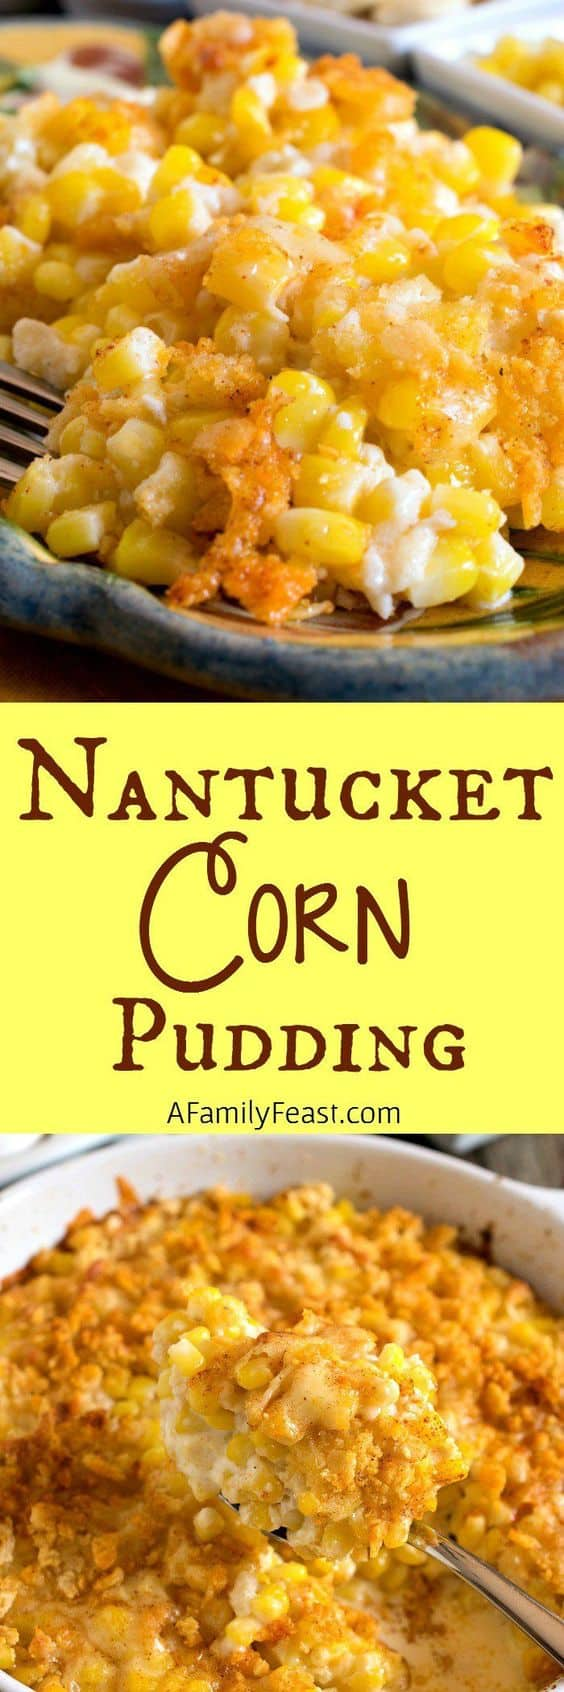 Corn Pudding. 25 Best Thanksgiving recipes for dinner party! Are you hosting Thanksgiving this year? Get your cooking inspiration in Thanksgiving food, side dishes, find some stuffing recipes for Thanksgiving.